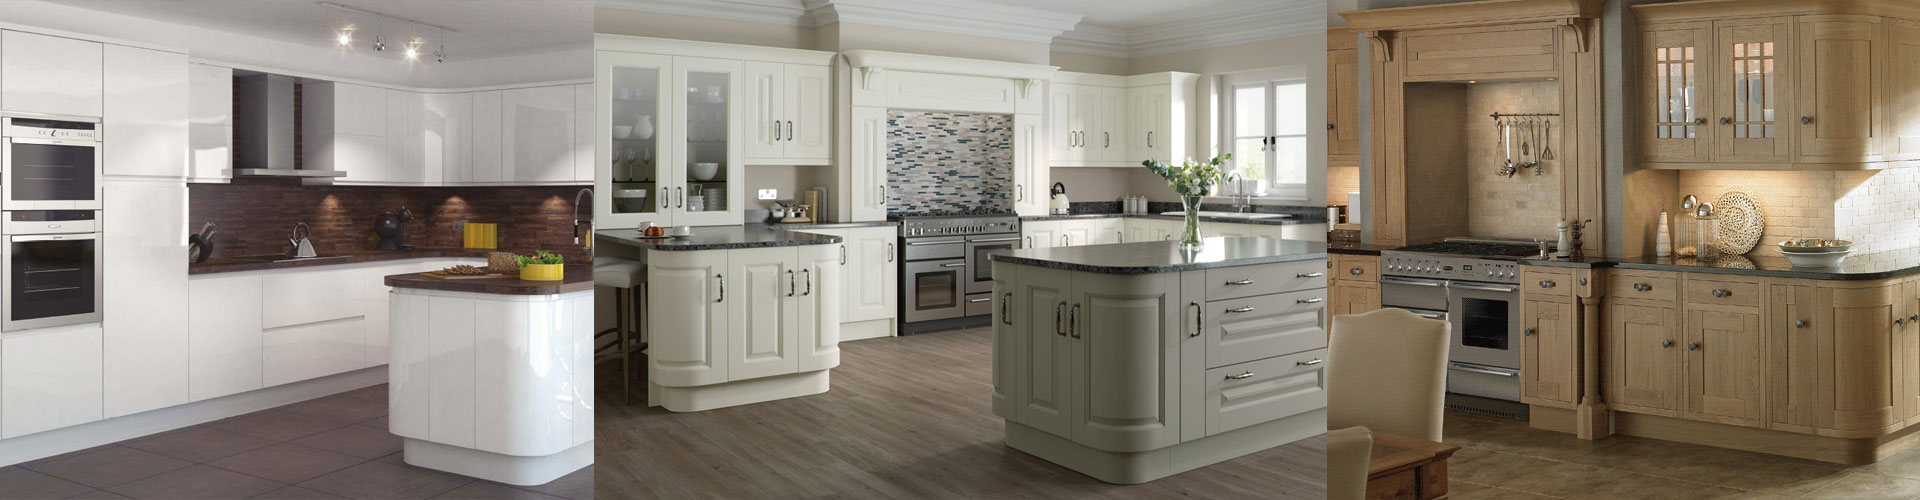 British Kitchens Aberdeen & Aberdeenshire: Sheraton Kitchens